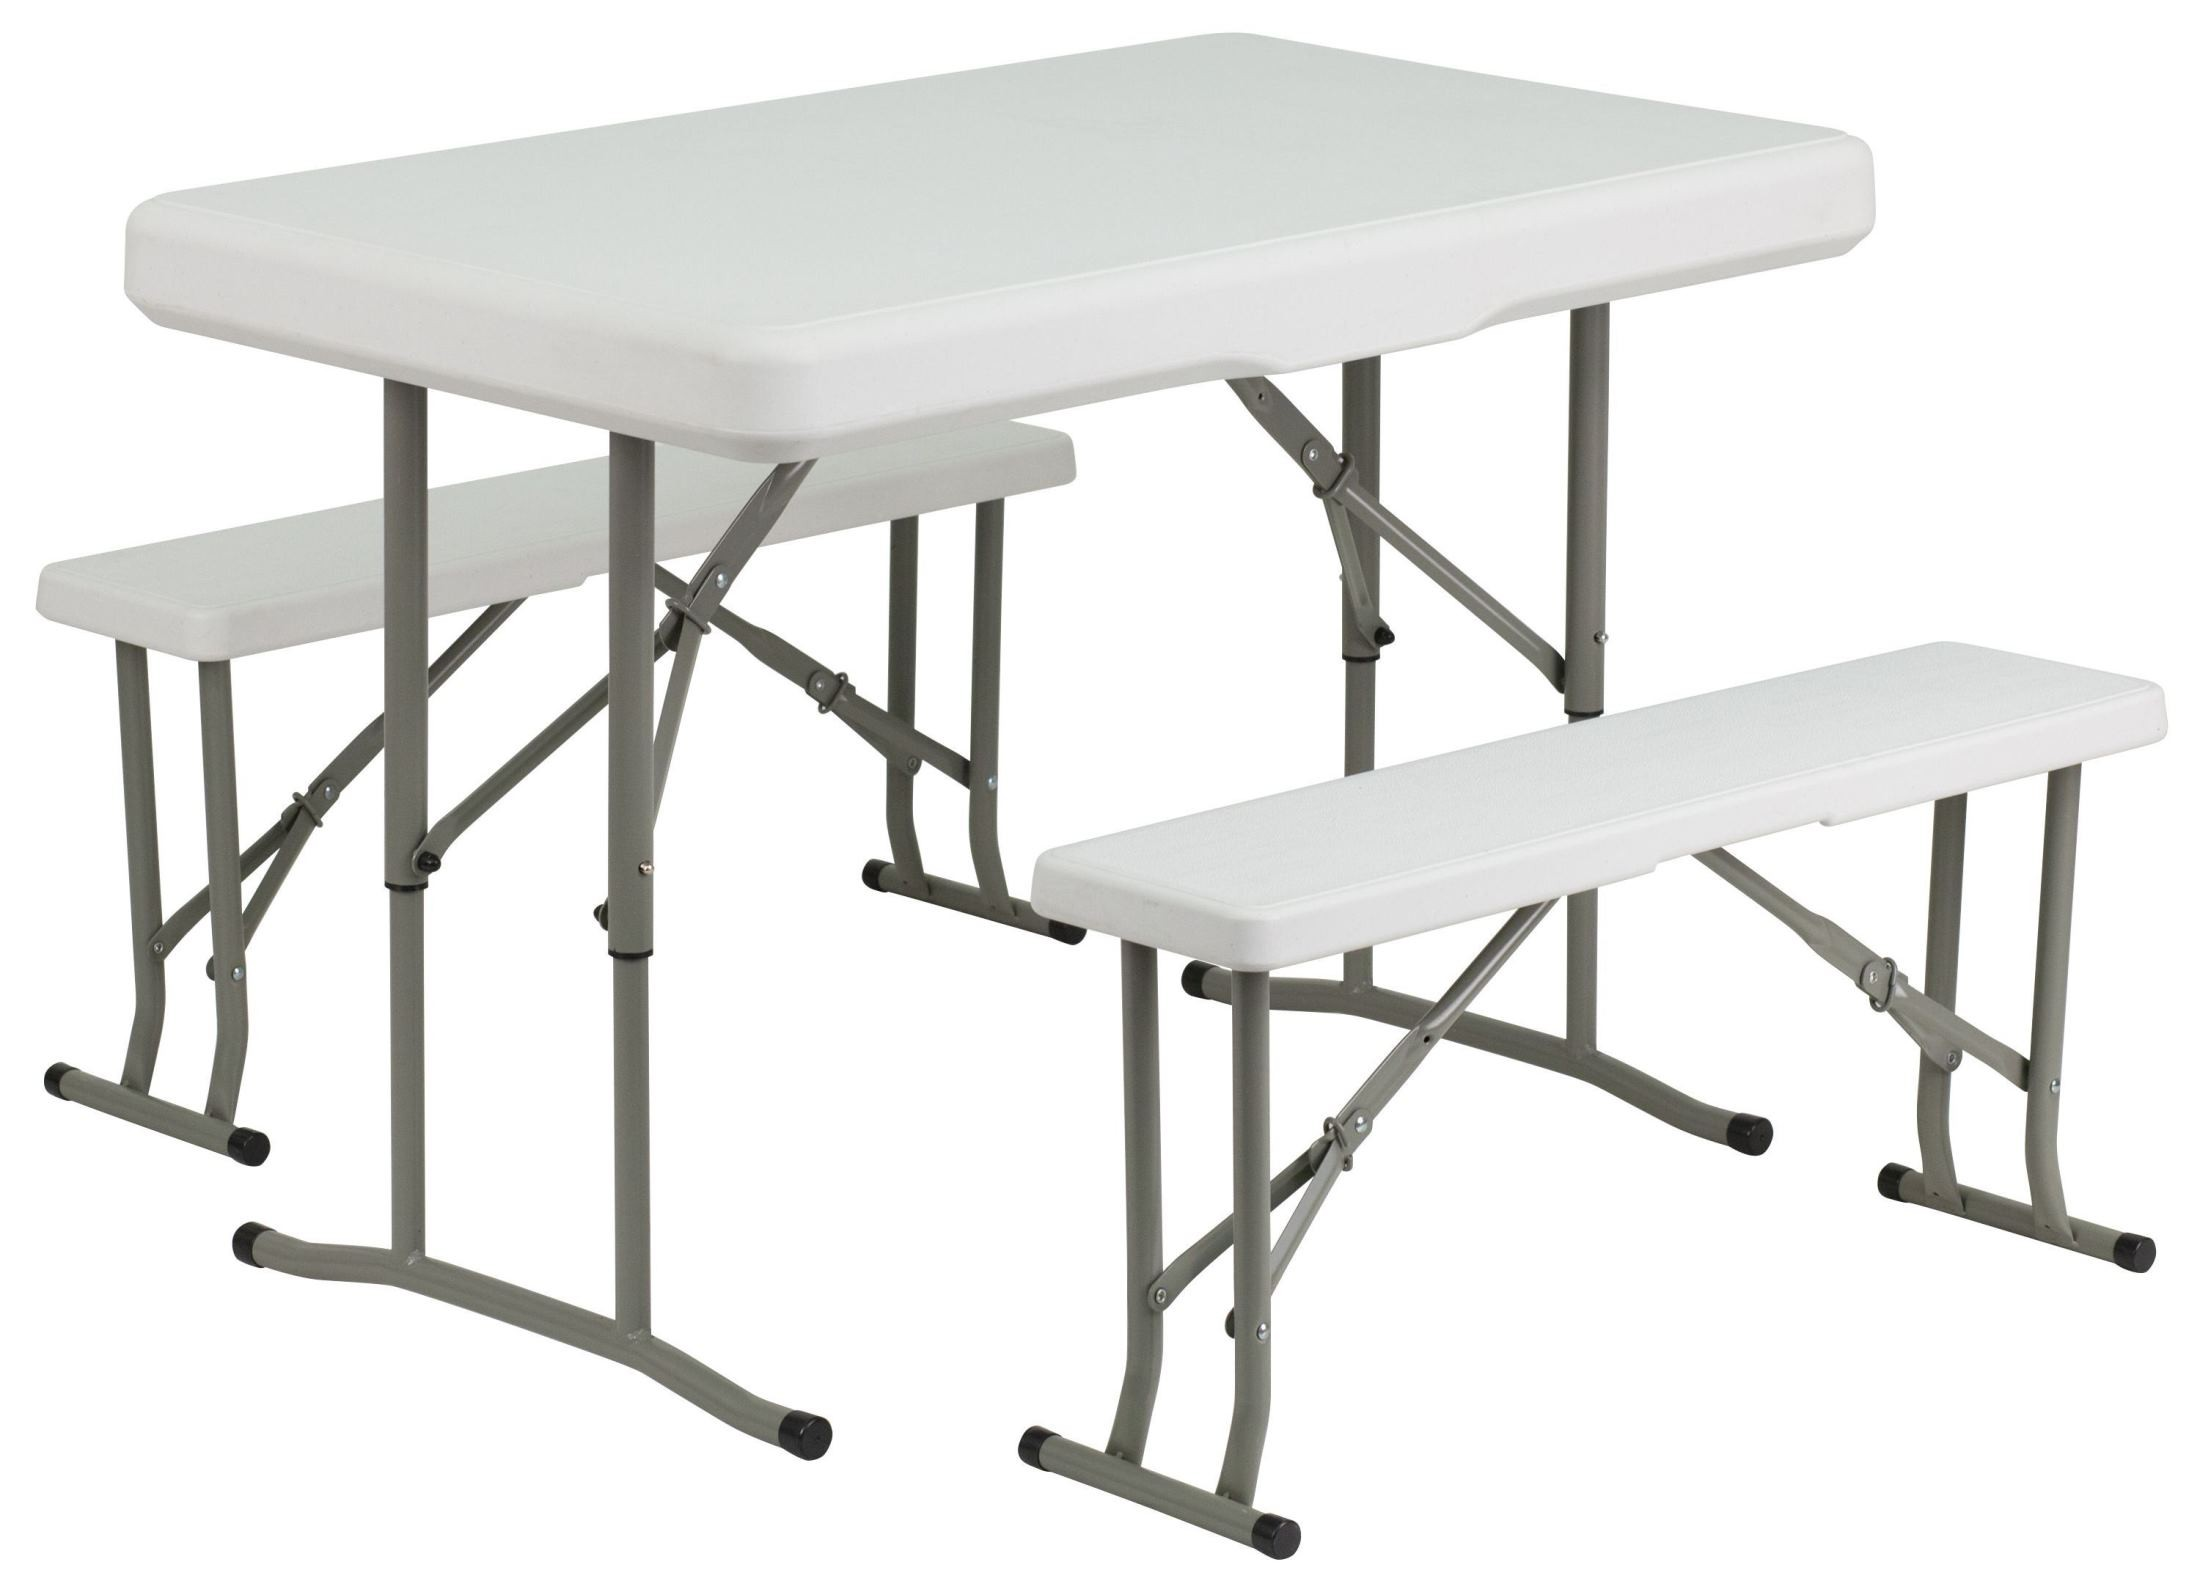 Plastic Folding Table And 2 Benches Set From Renegade